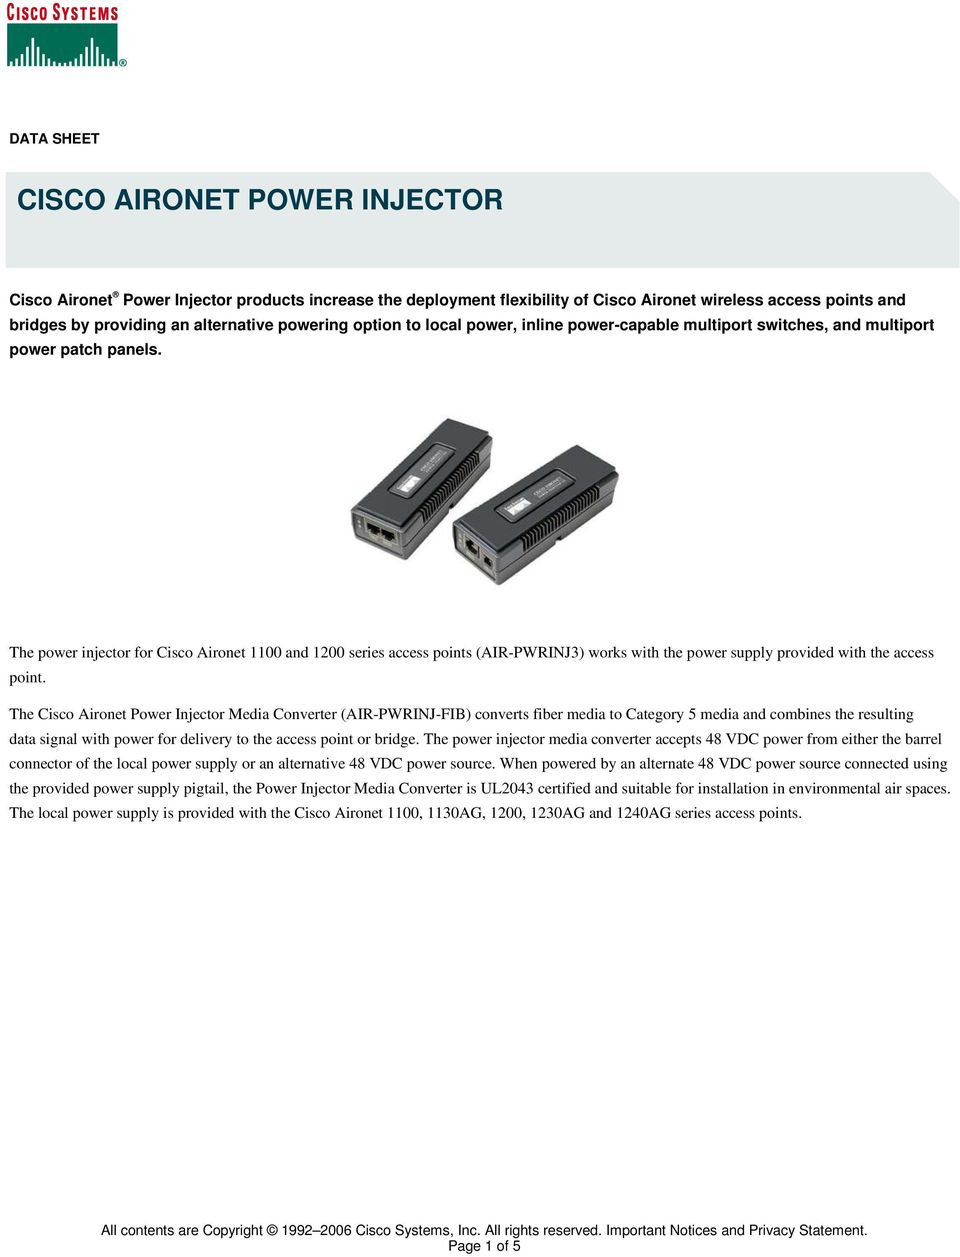 The power injector for Cisco Aironet 1100 and 1200 series access points (AIR-PWRINJ3) works with the power supply provided with the access point.